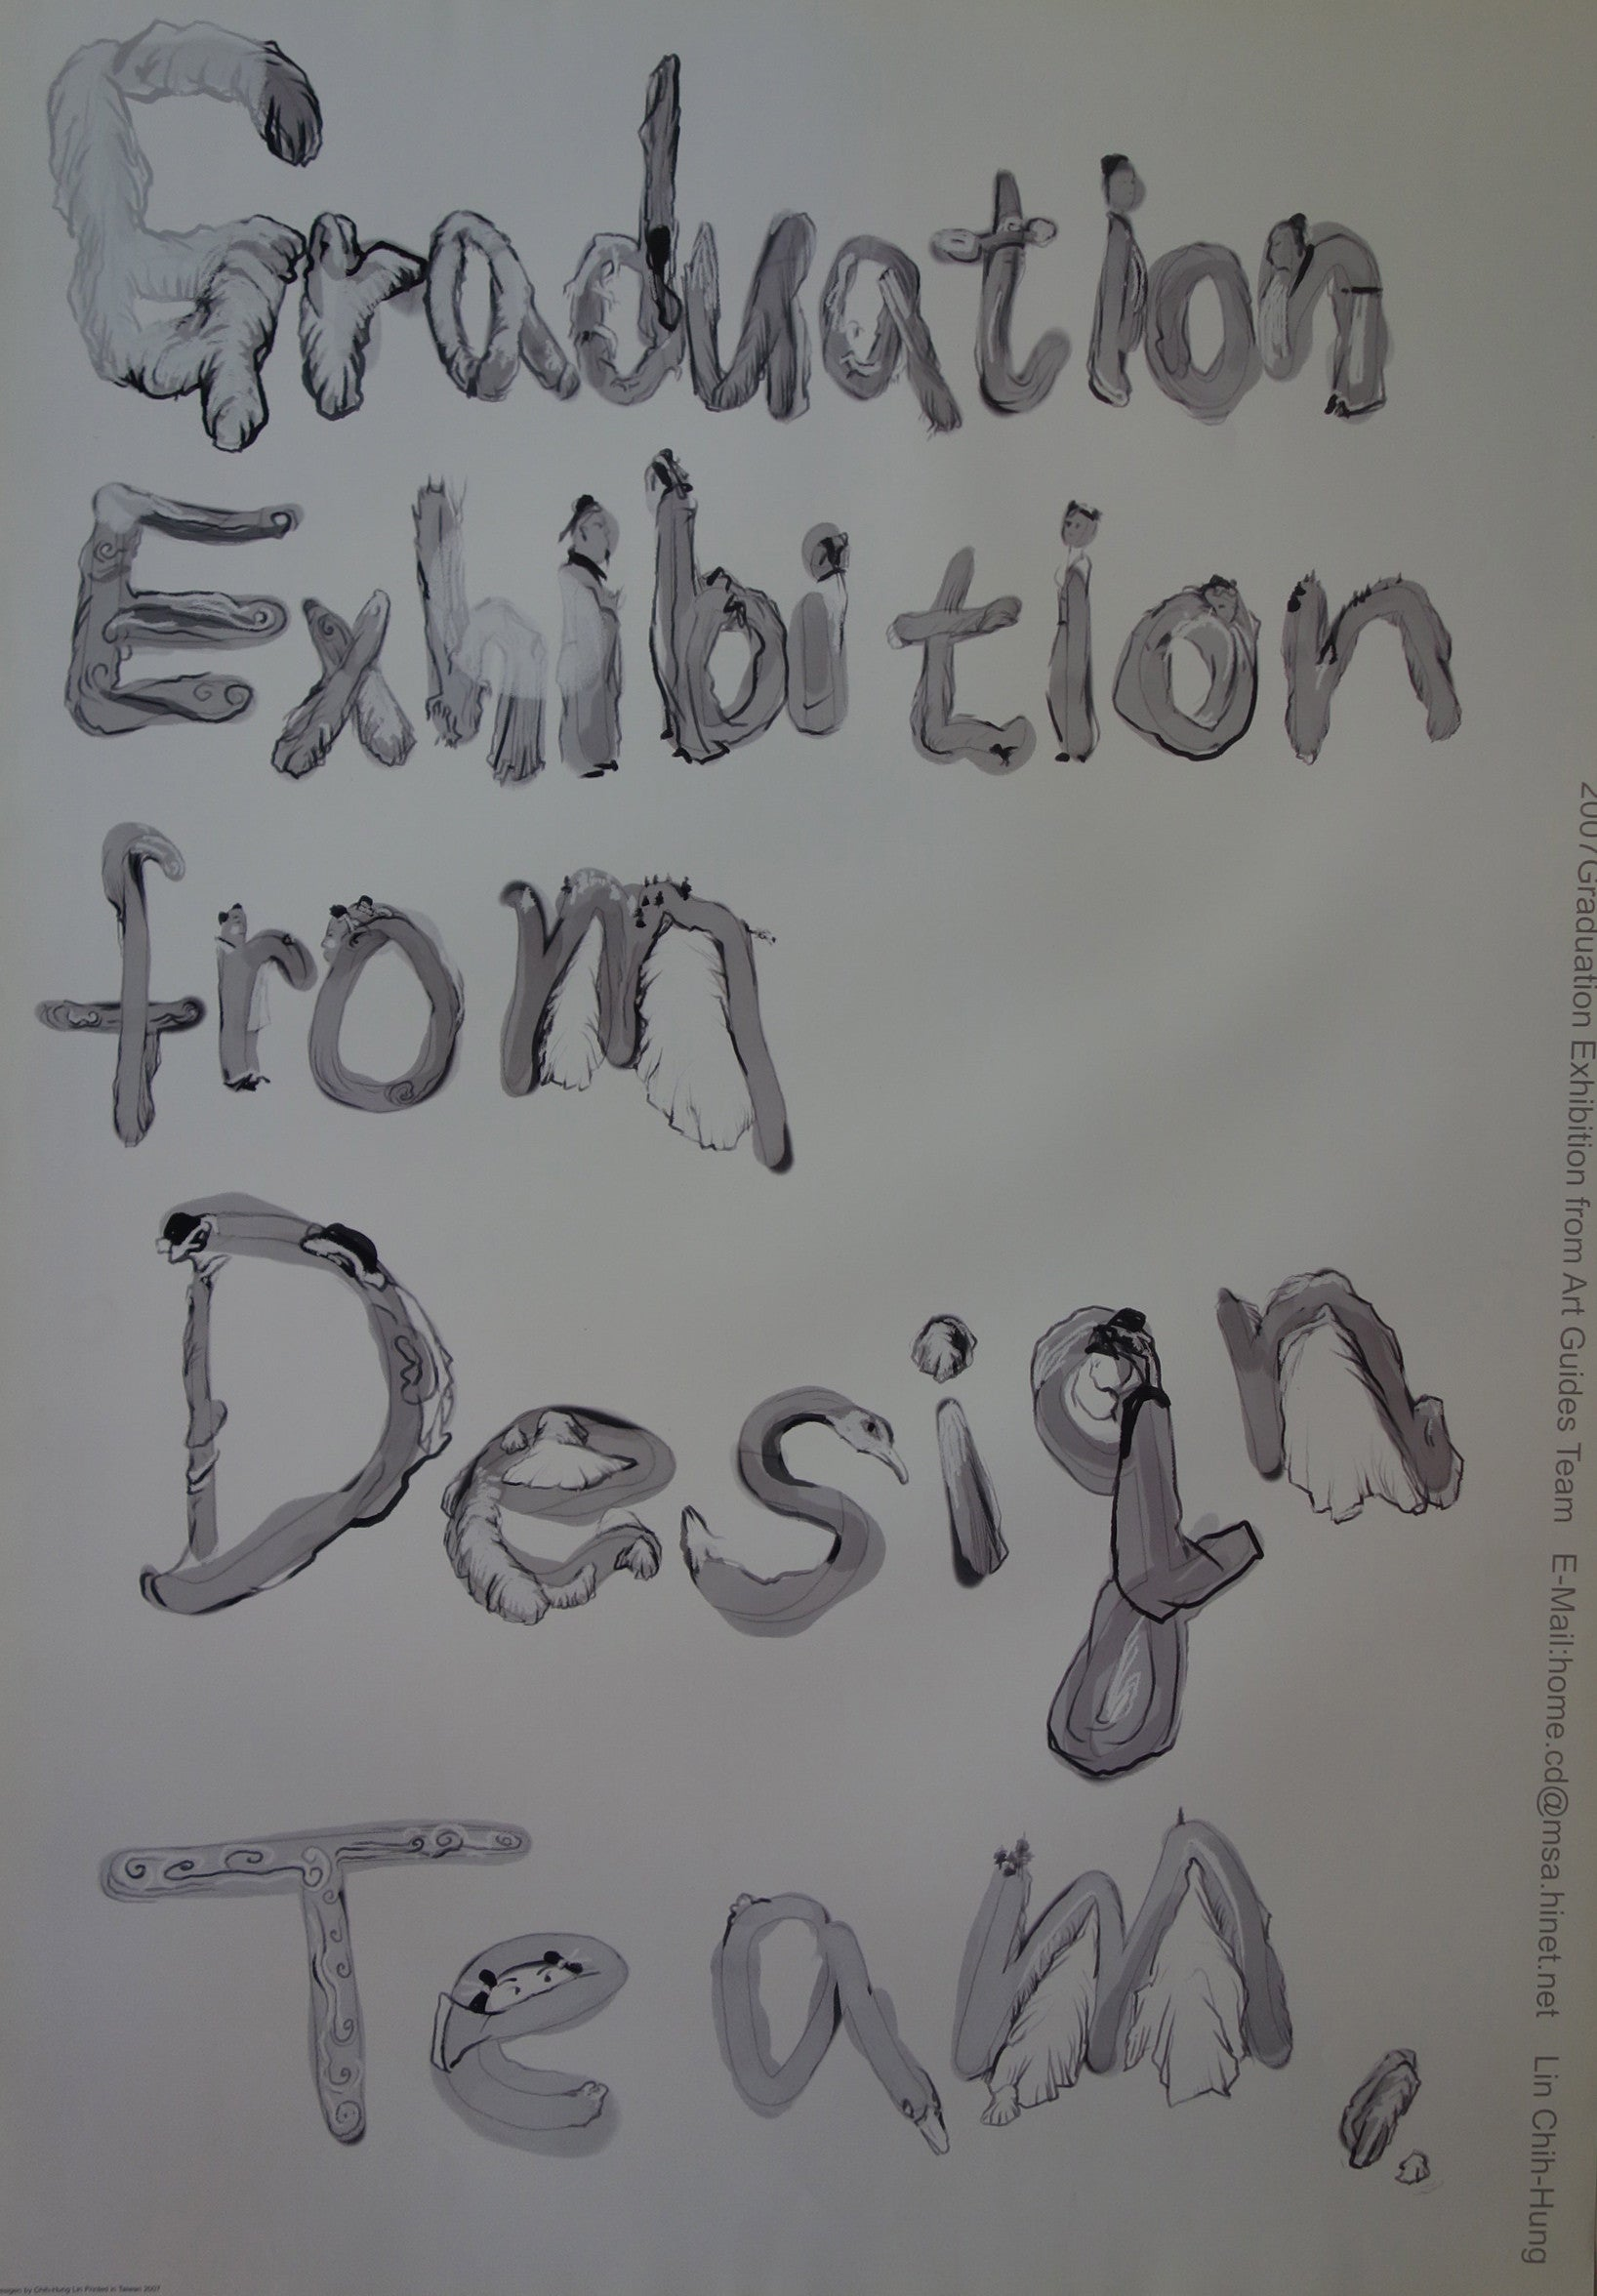 Graduation Exhibition From Design Team